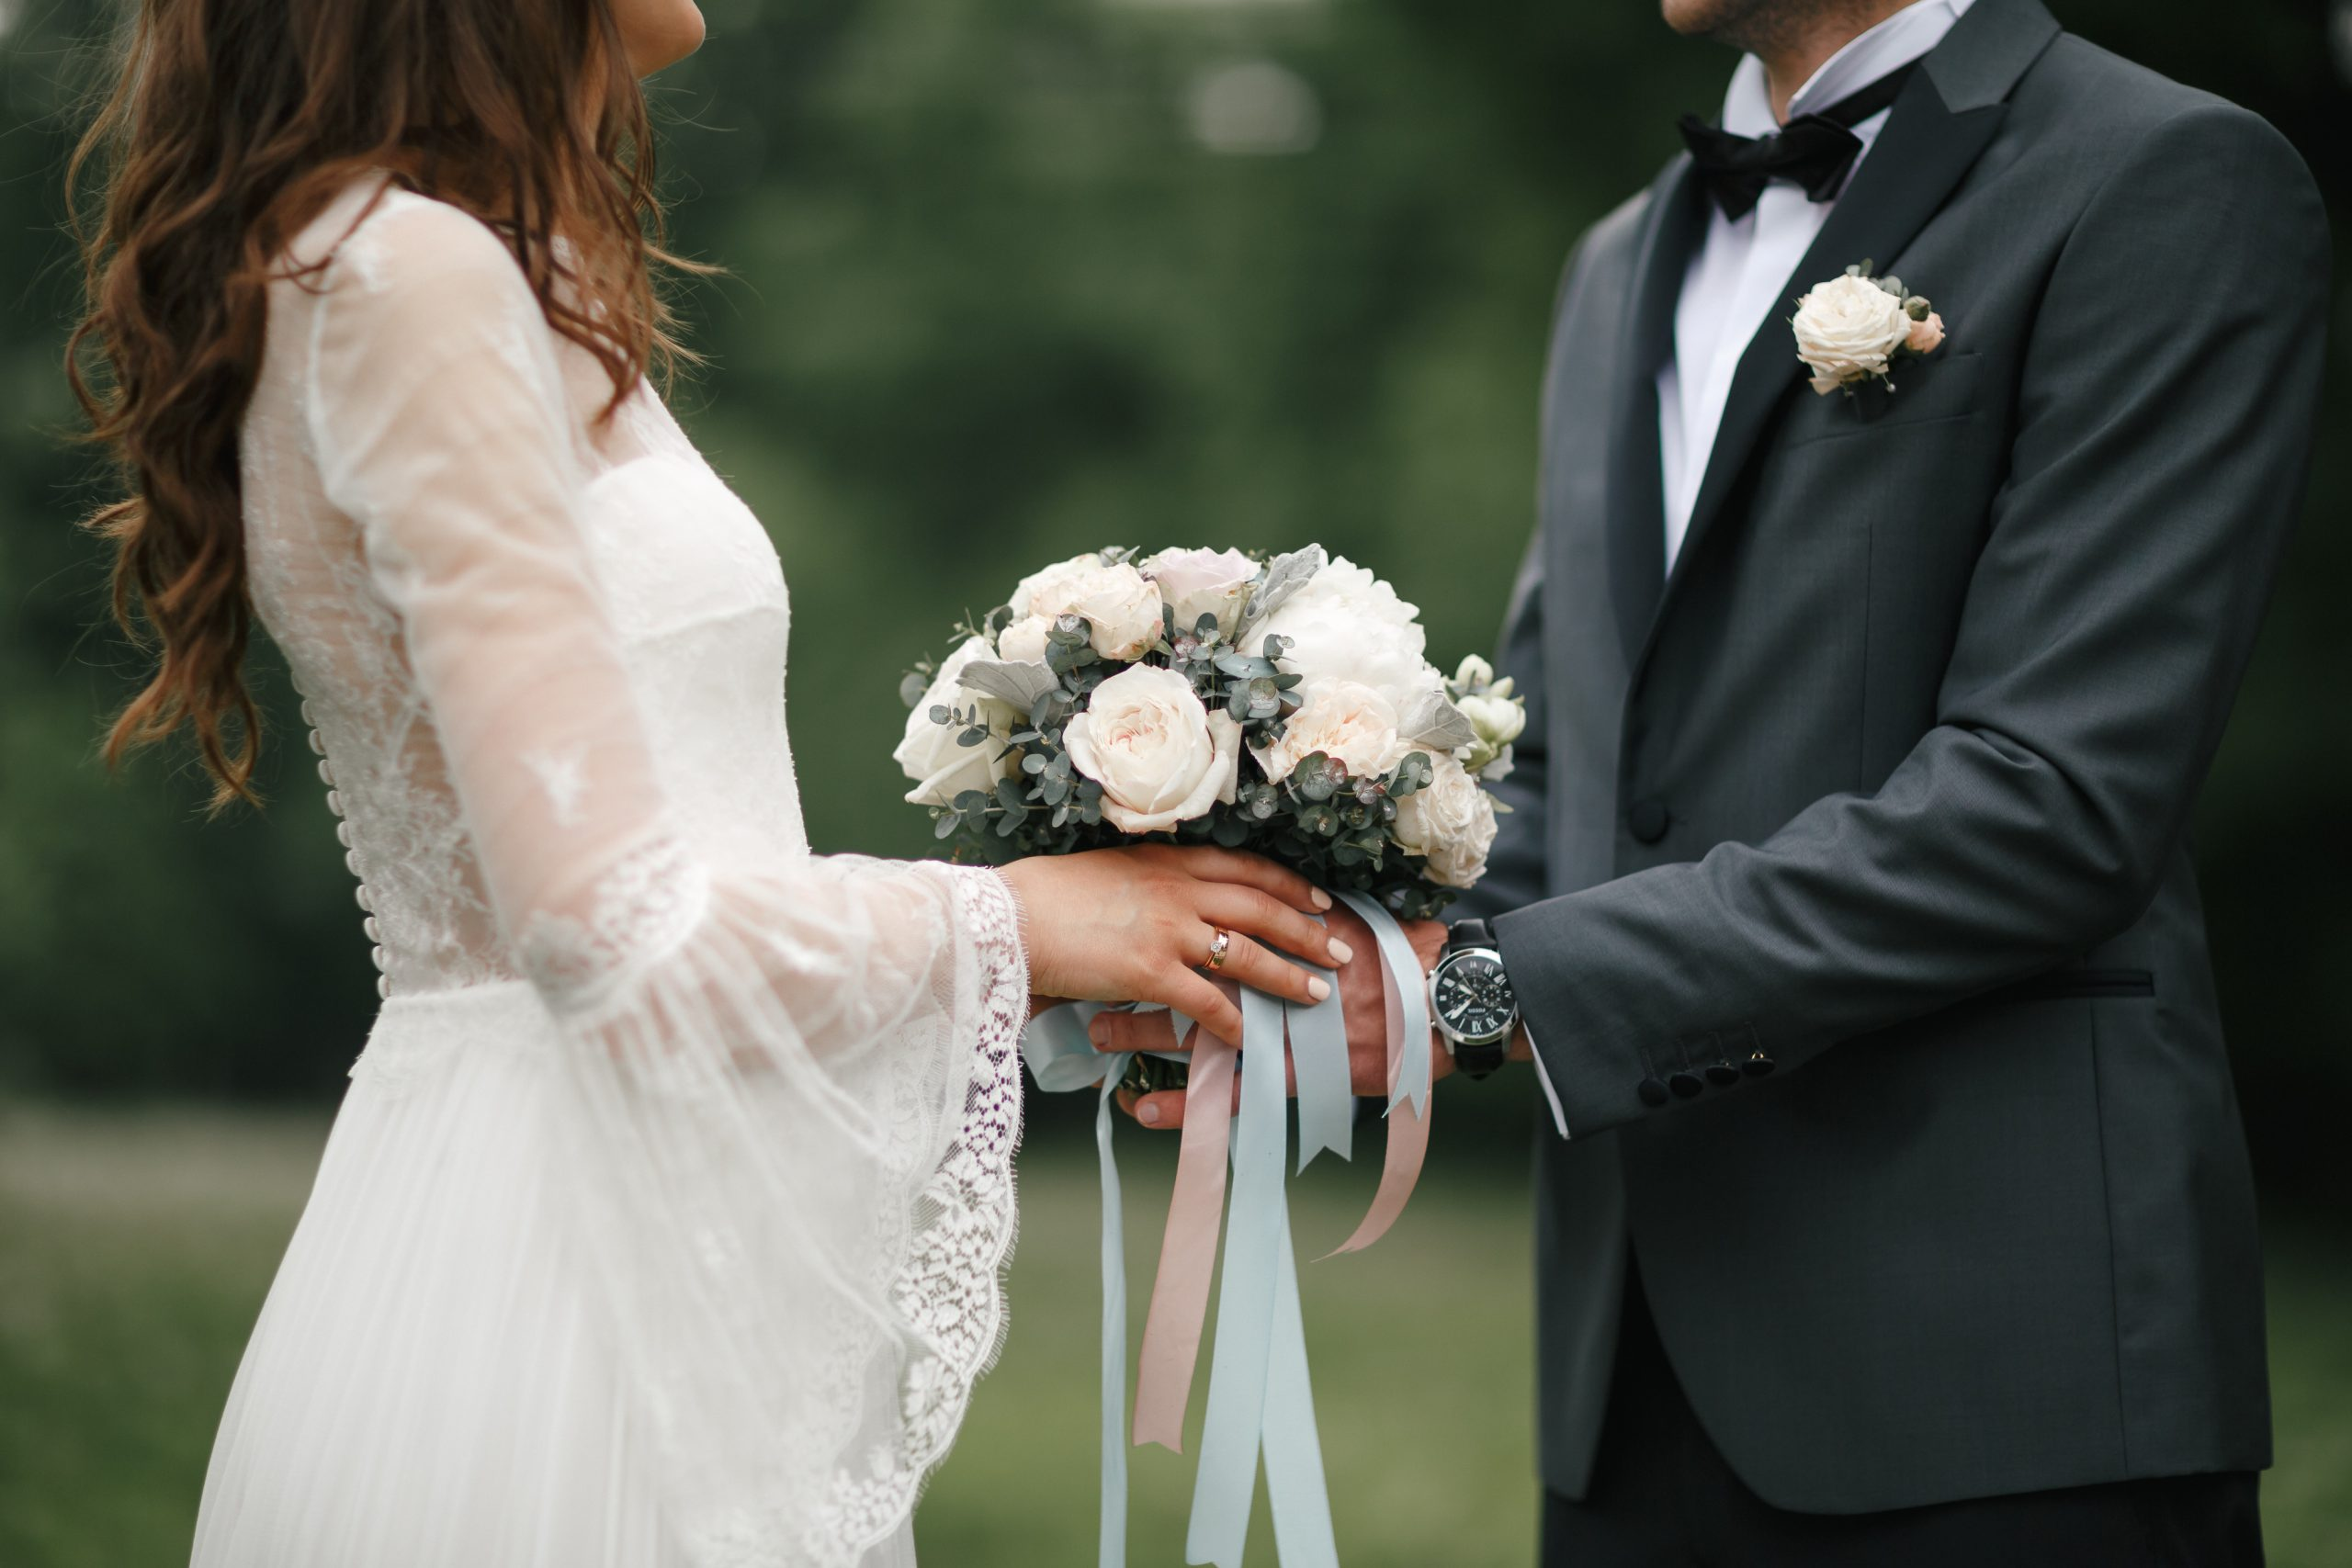 Wedding Restrictions Guide, June 21st 2021